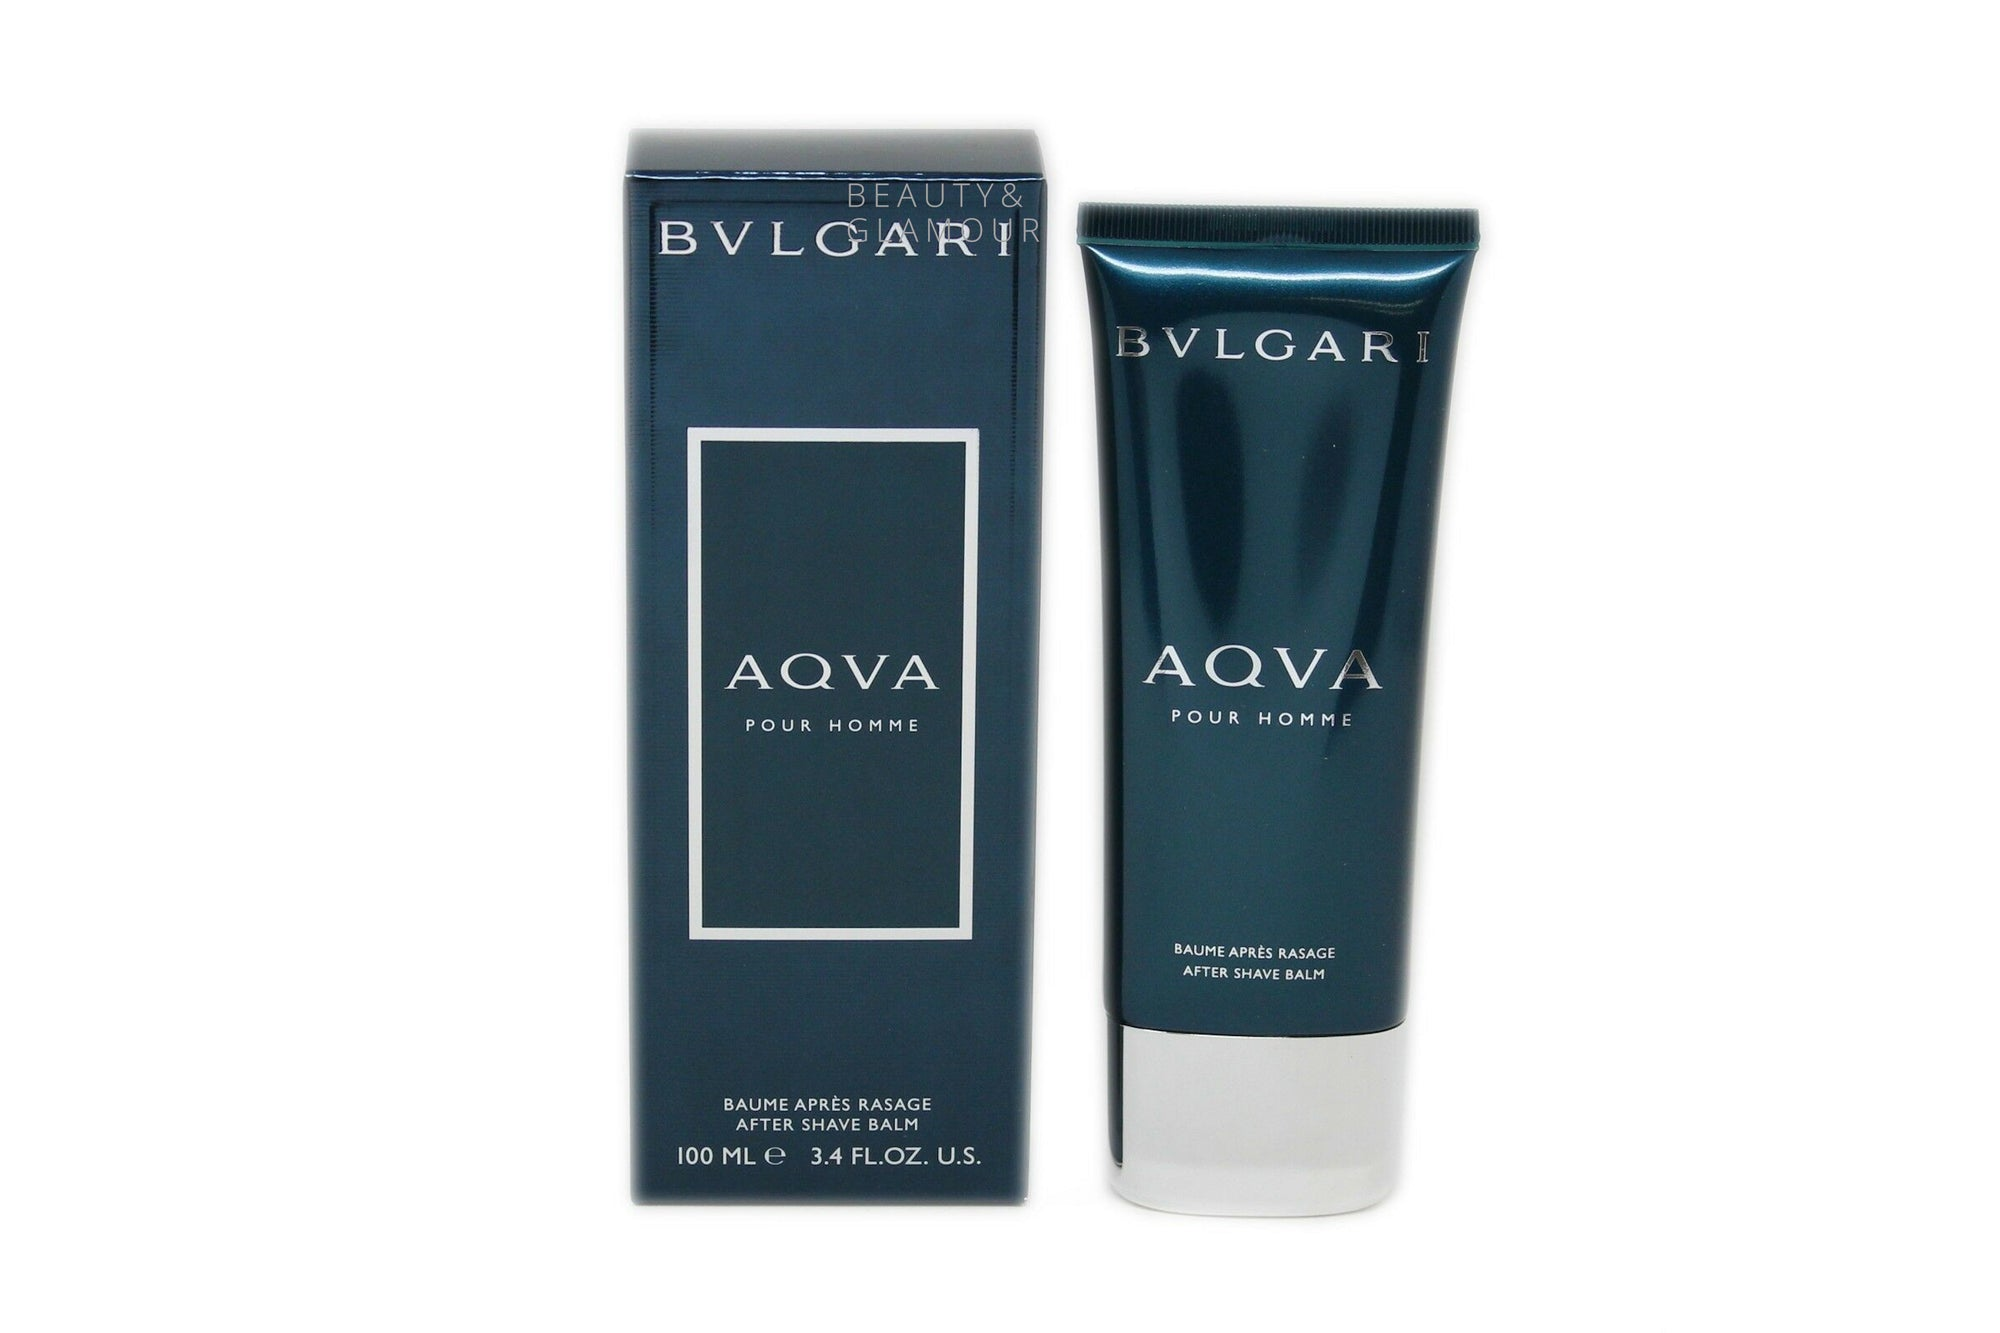 BVLGARI AQVA POUR HOMME AFTER SHAVE BALM